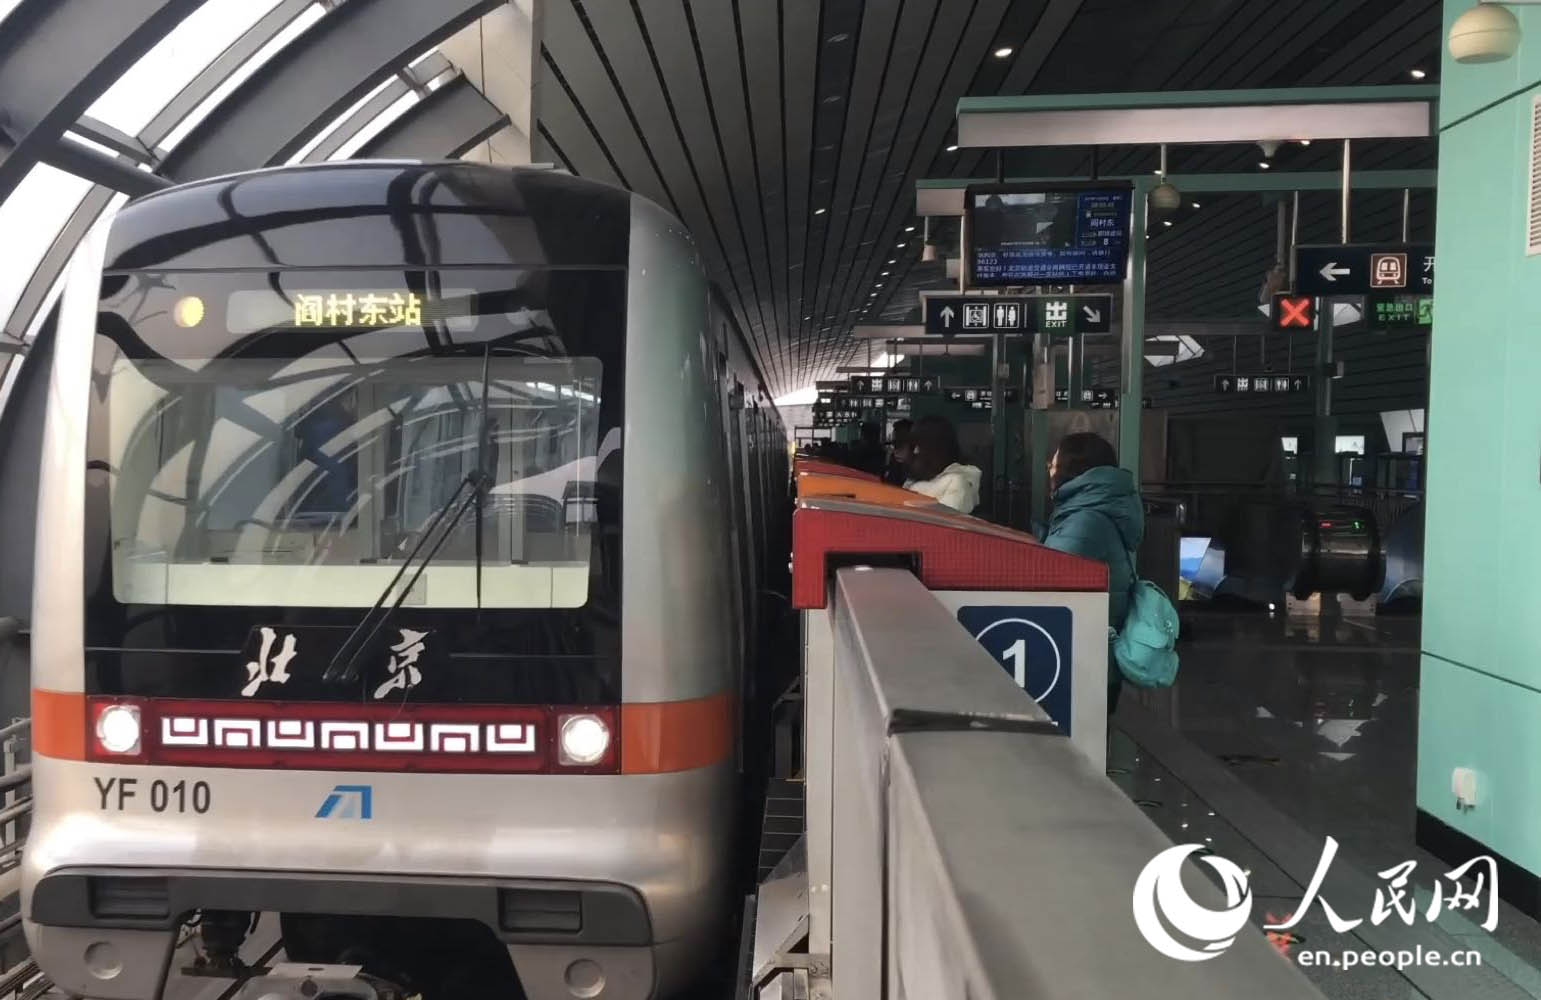 China opens first driverless subway